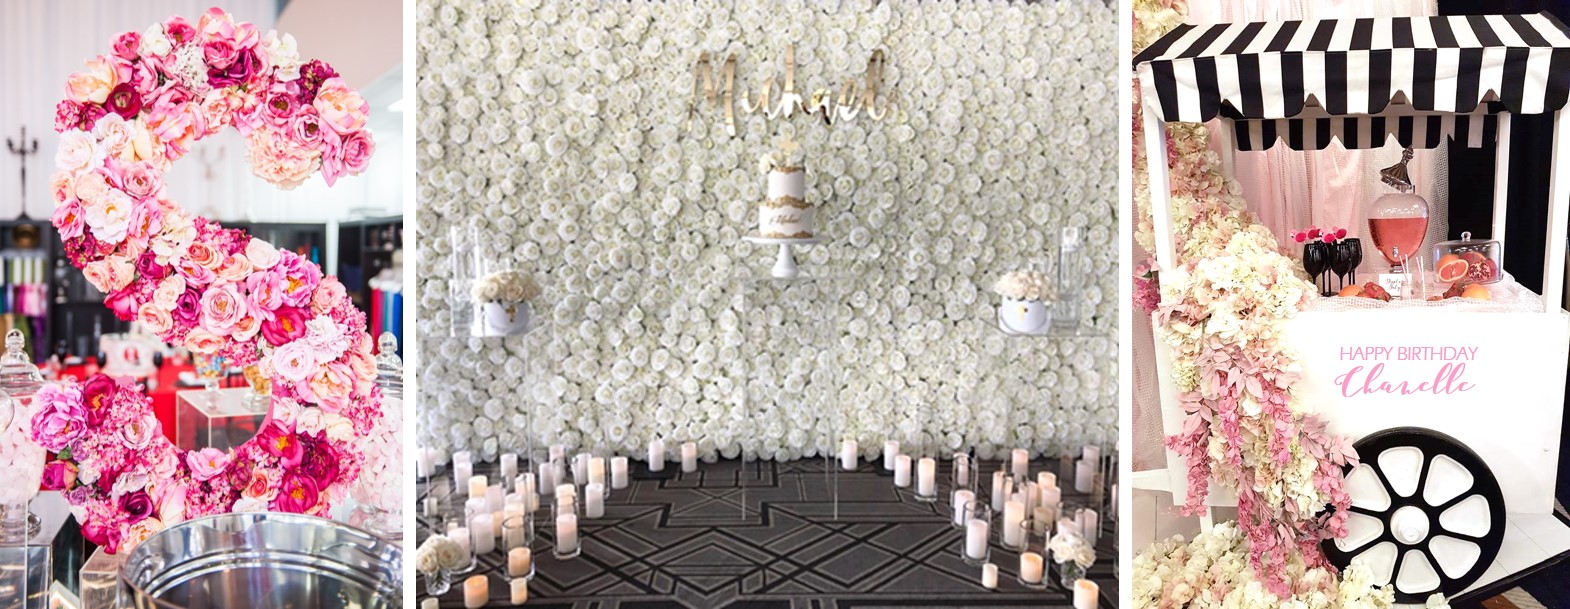 Photography by Milly Jane Photography   Photography by Luxe Flower Wall Hire   Photography by Styled Events